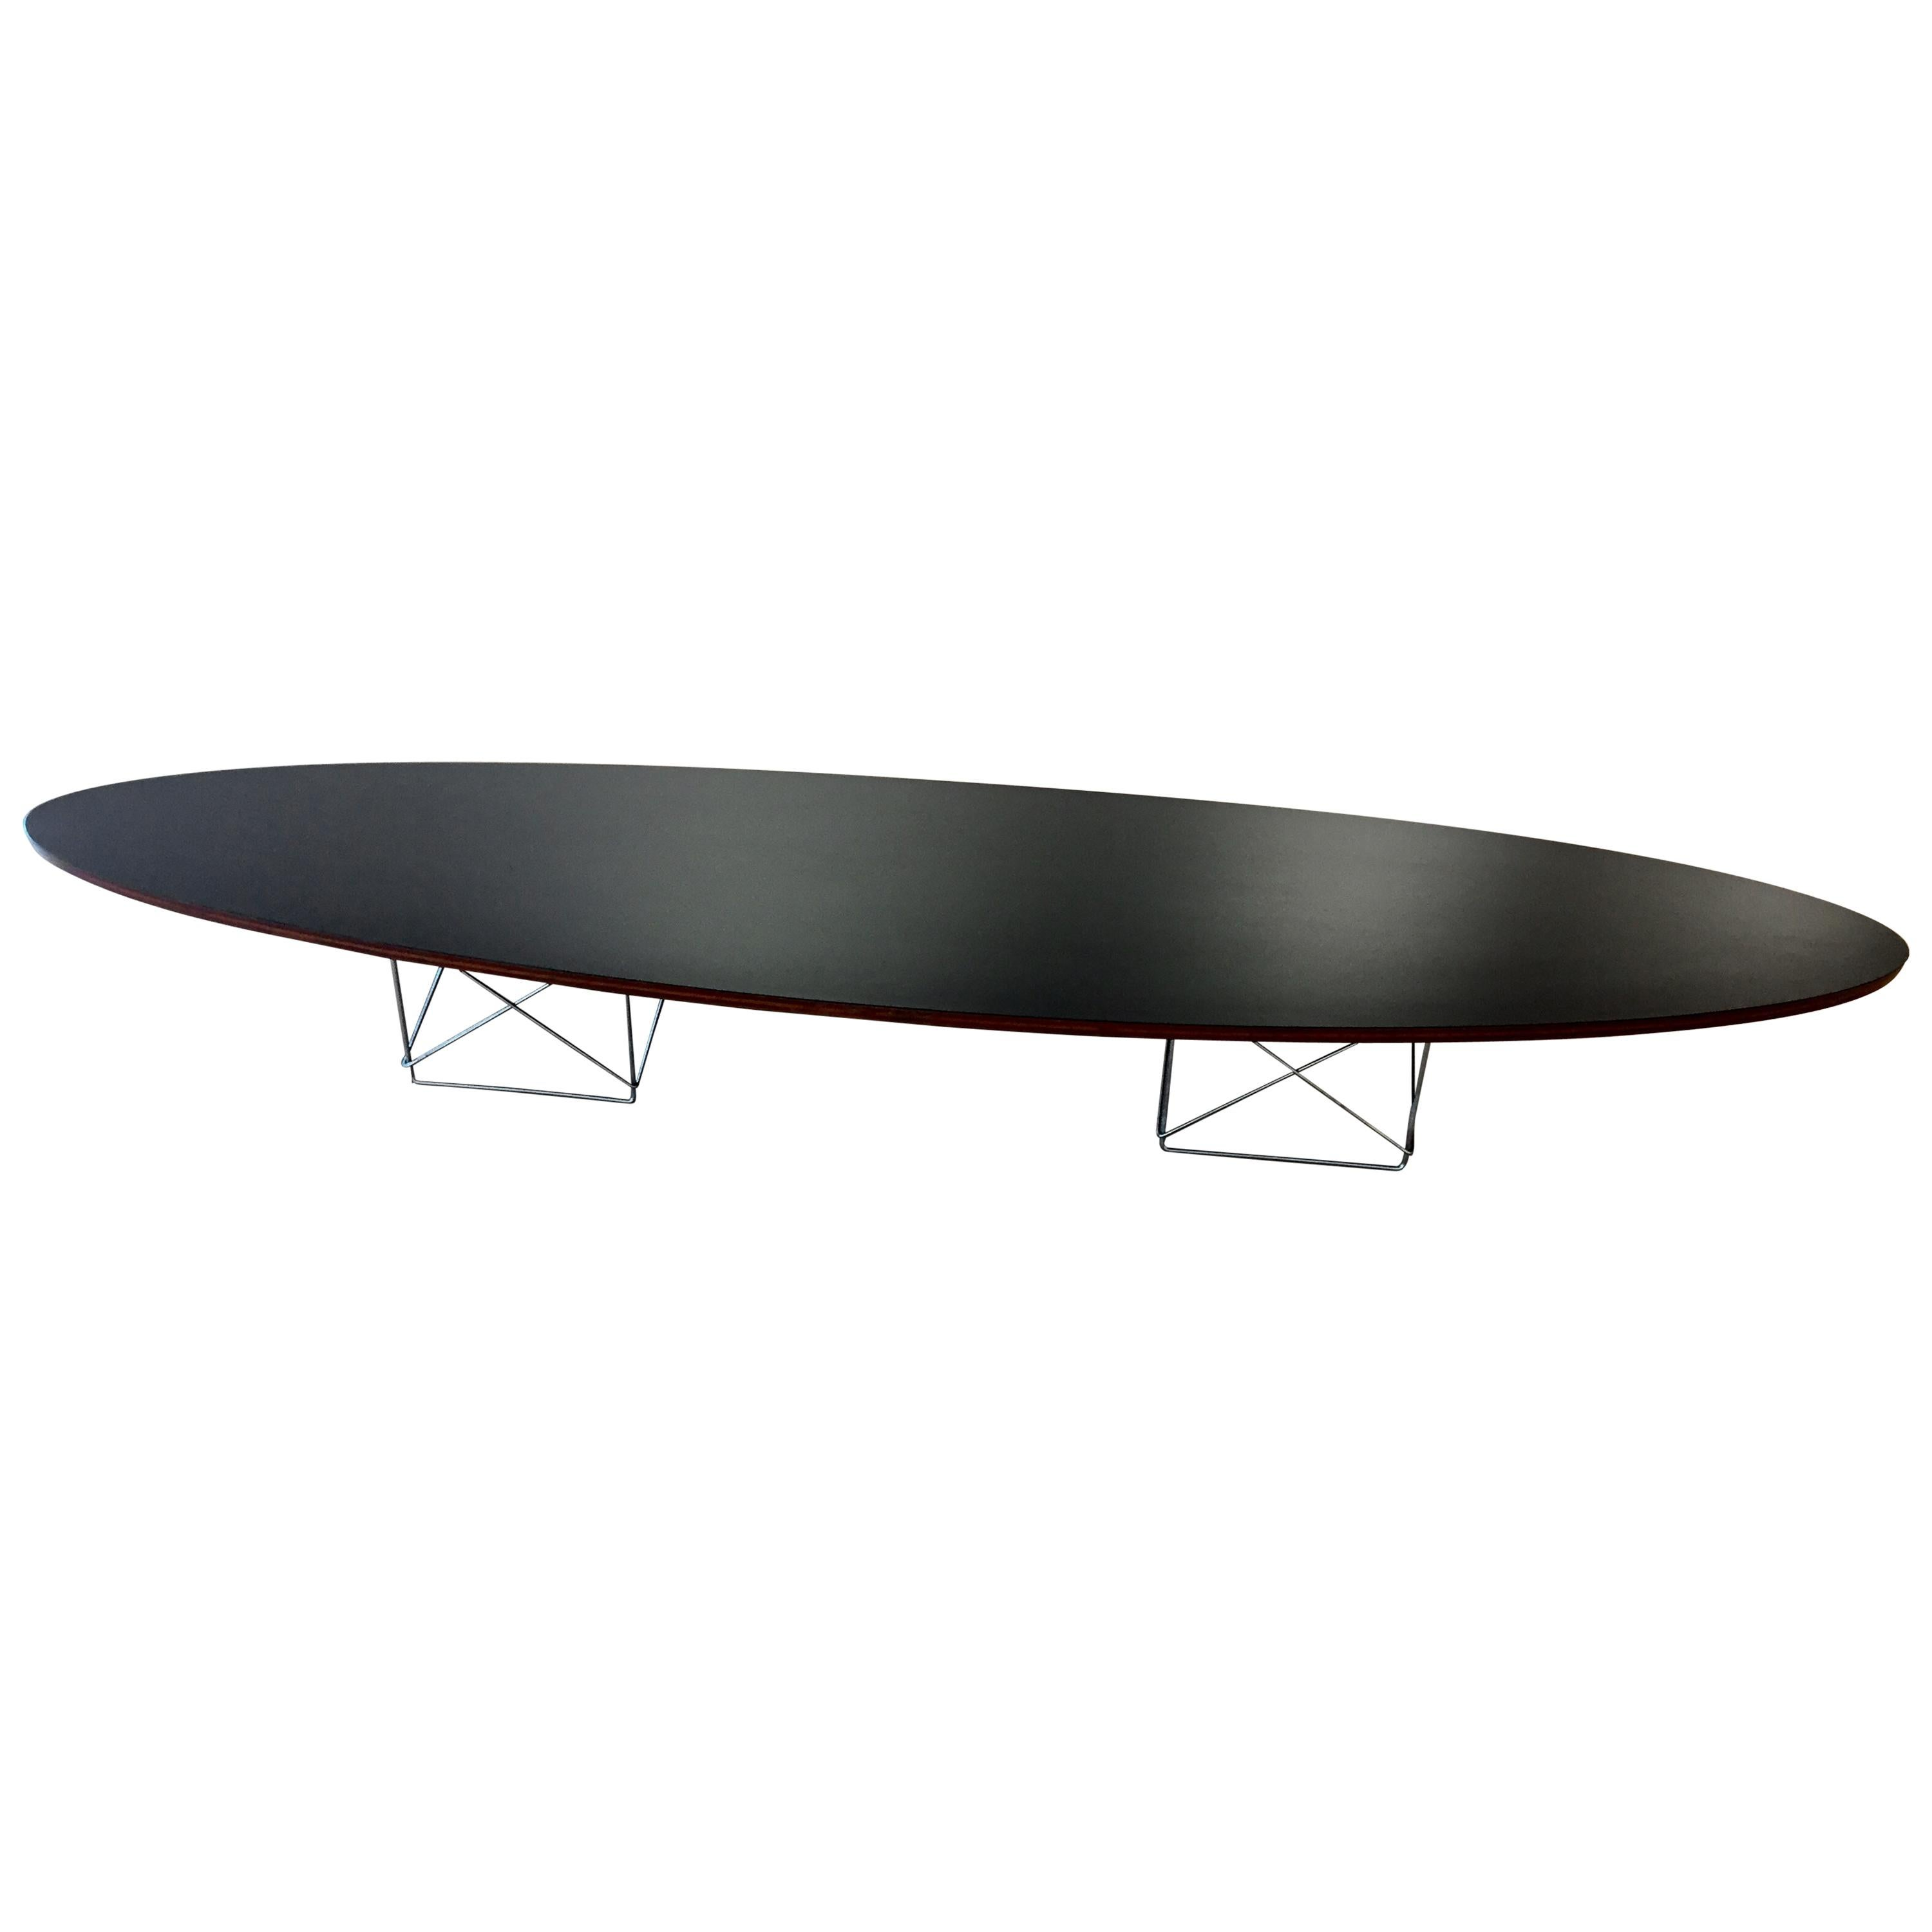 Eames Surfboard Coffee Table.Early Charles And Ray Eames Surfboard Table